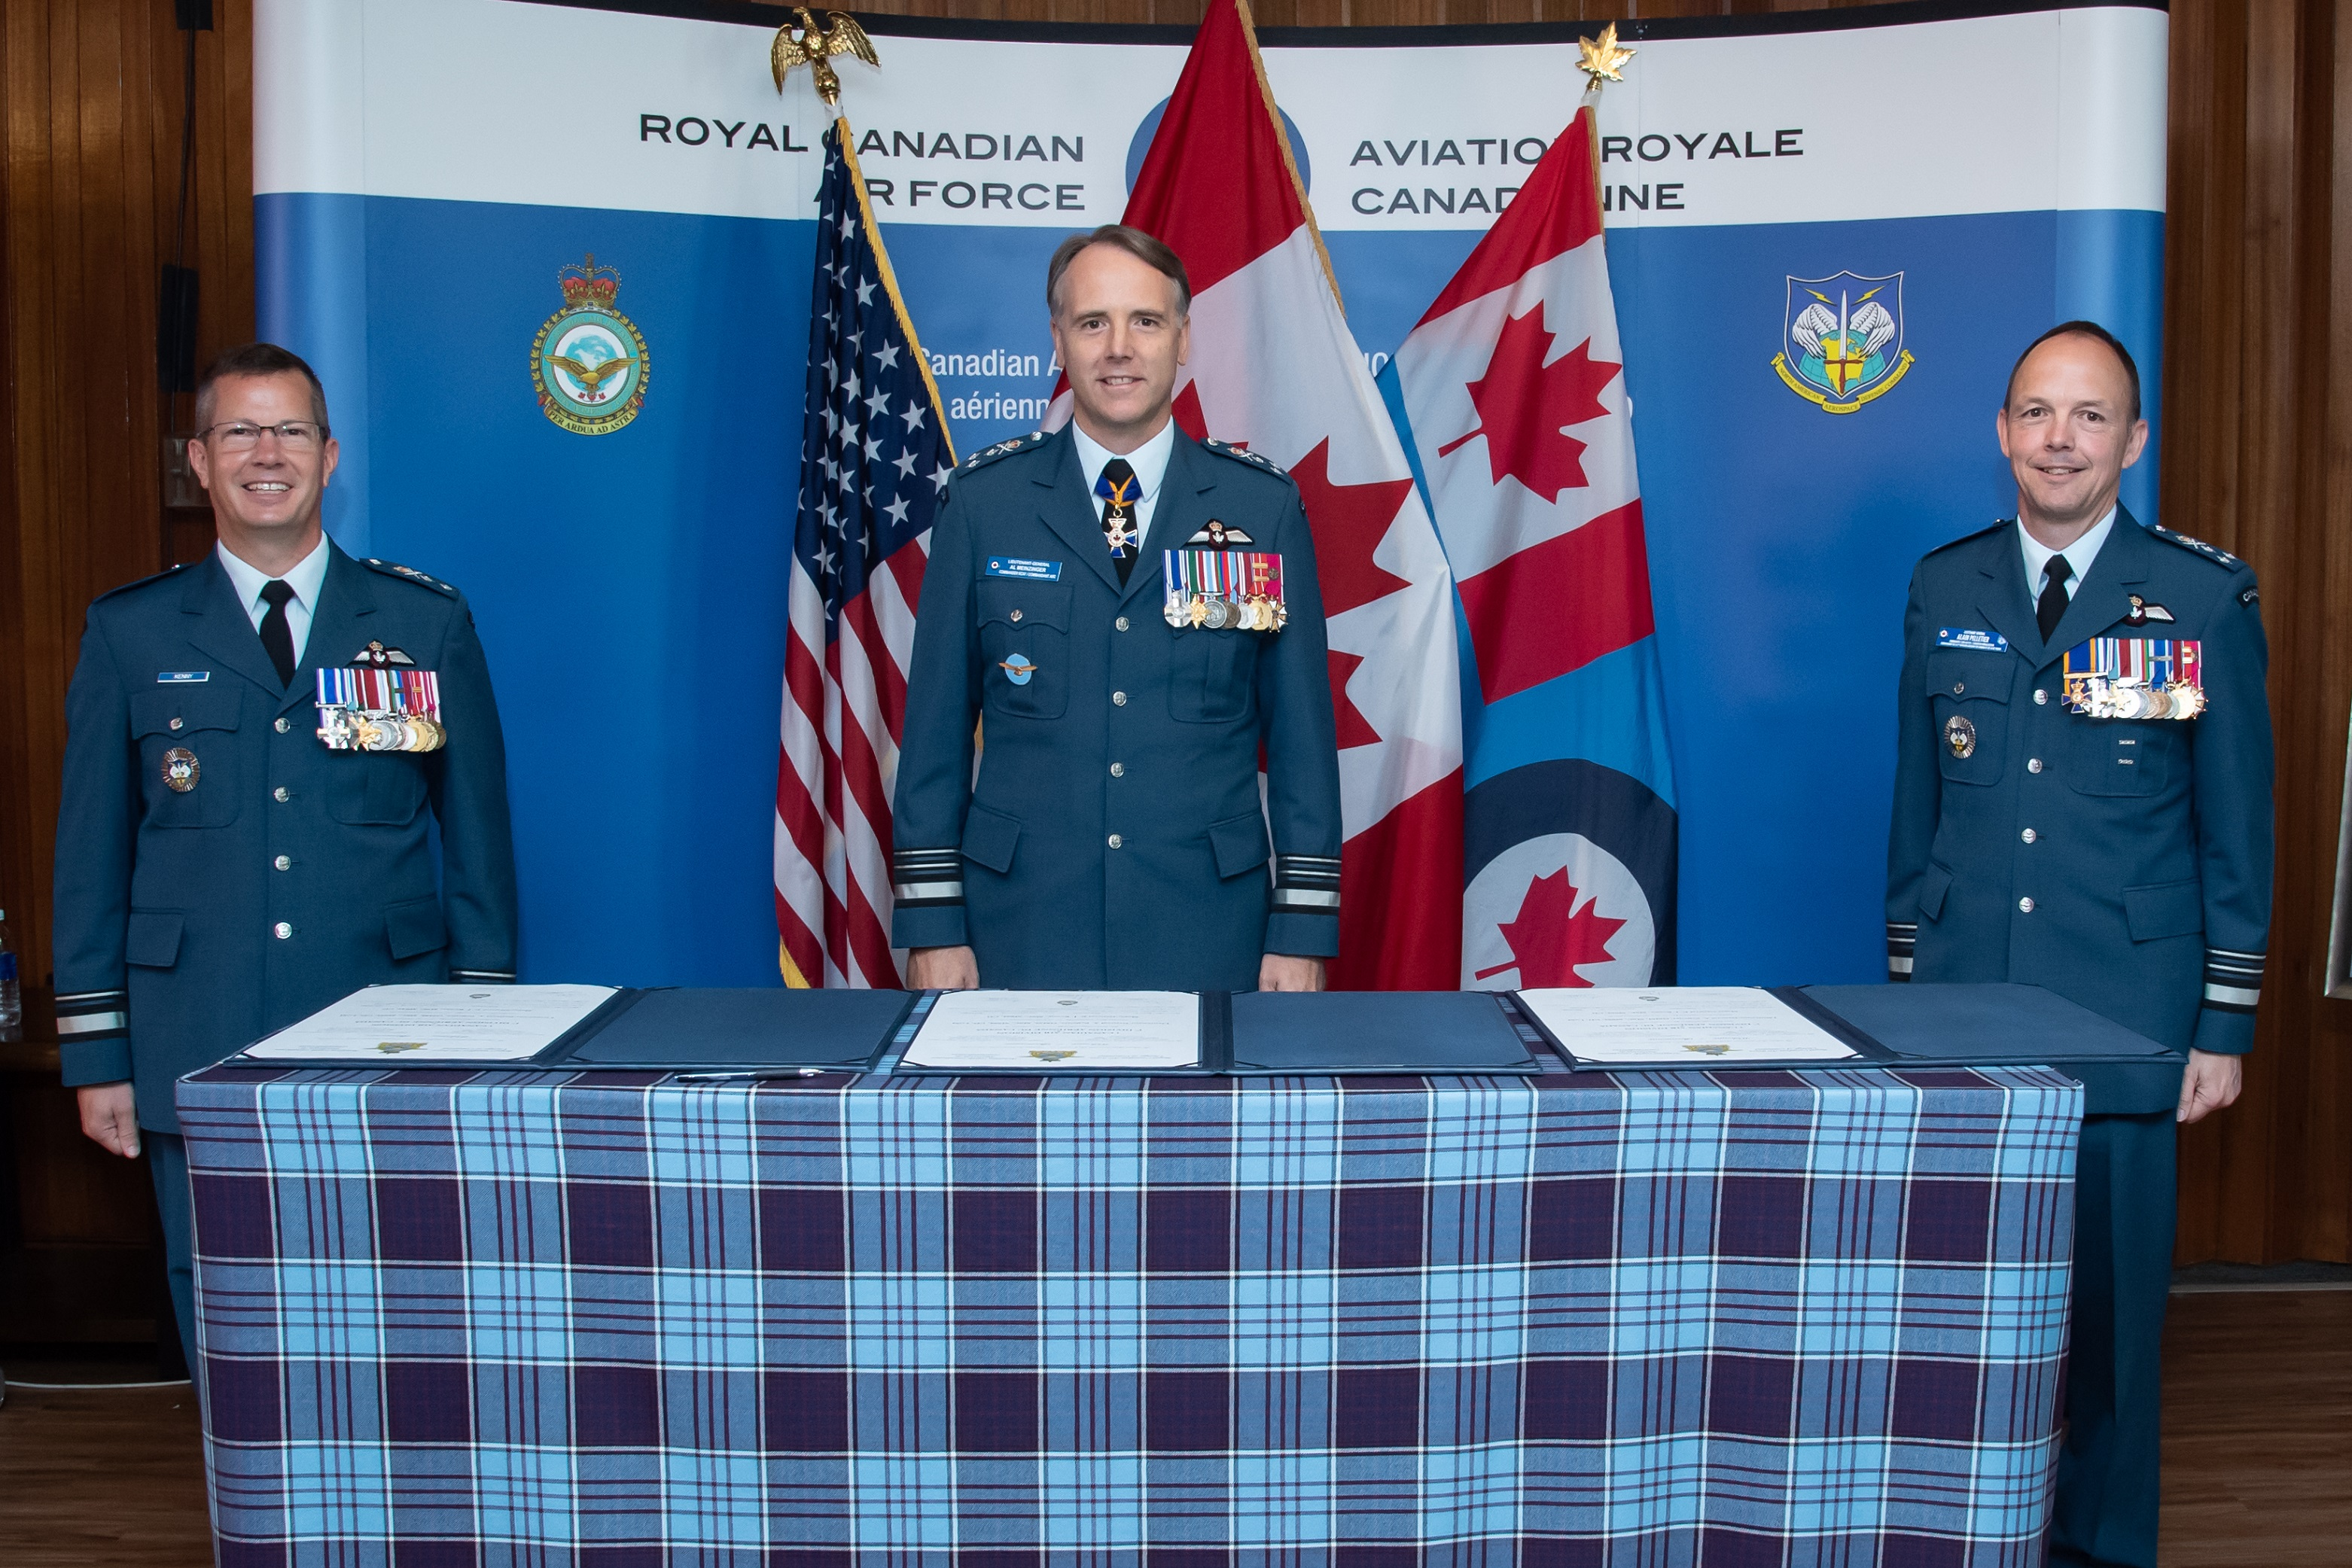 Three men wearing blue military uniforms stand behind a table covered in tartan and on which are documents. Behind the men, are a big blue and white backdrop and three flags.